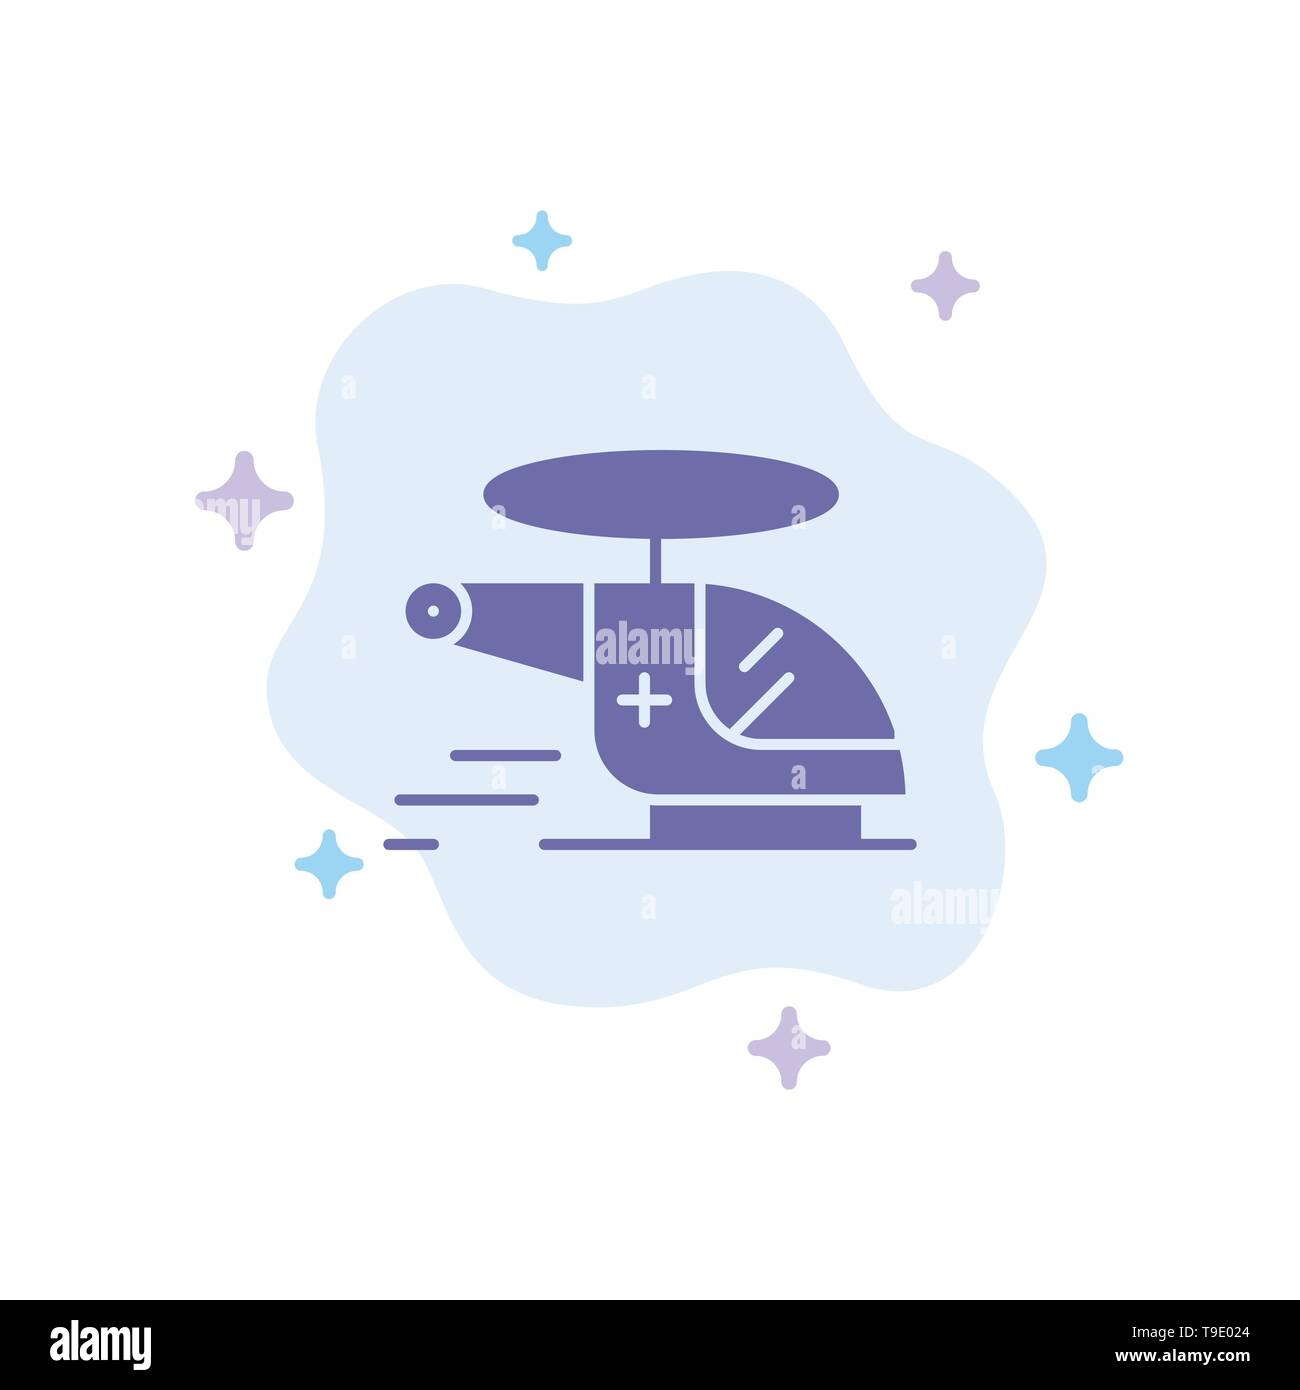 Helicopter, Chopper, Medical, Ambulance, Air Blue Icon on Abstract Cloud Background - Stock Image